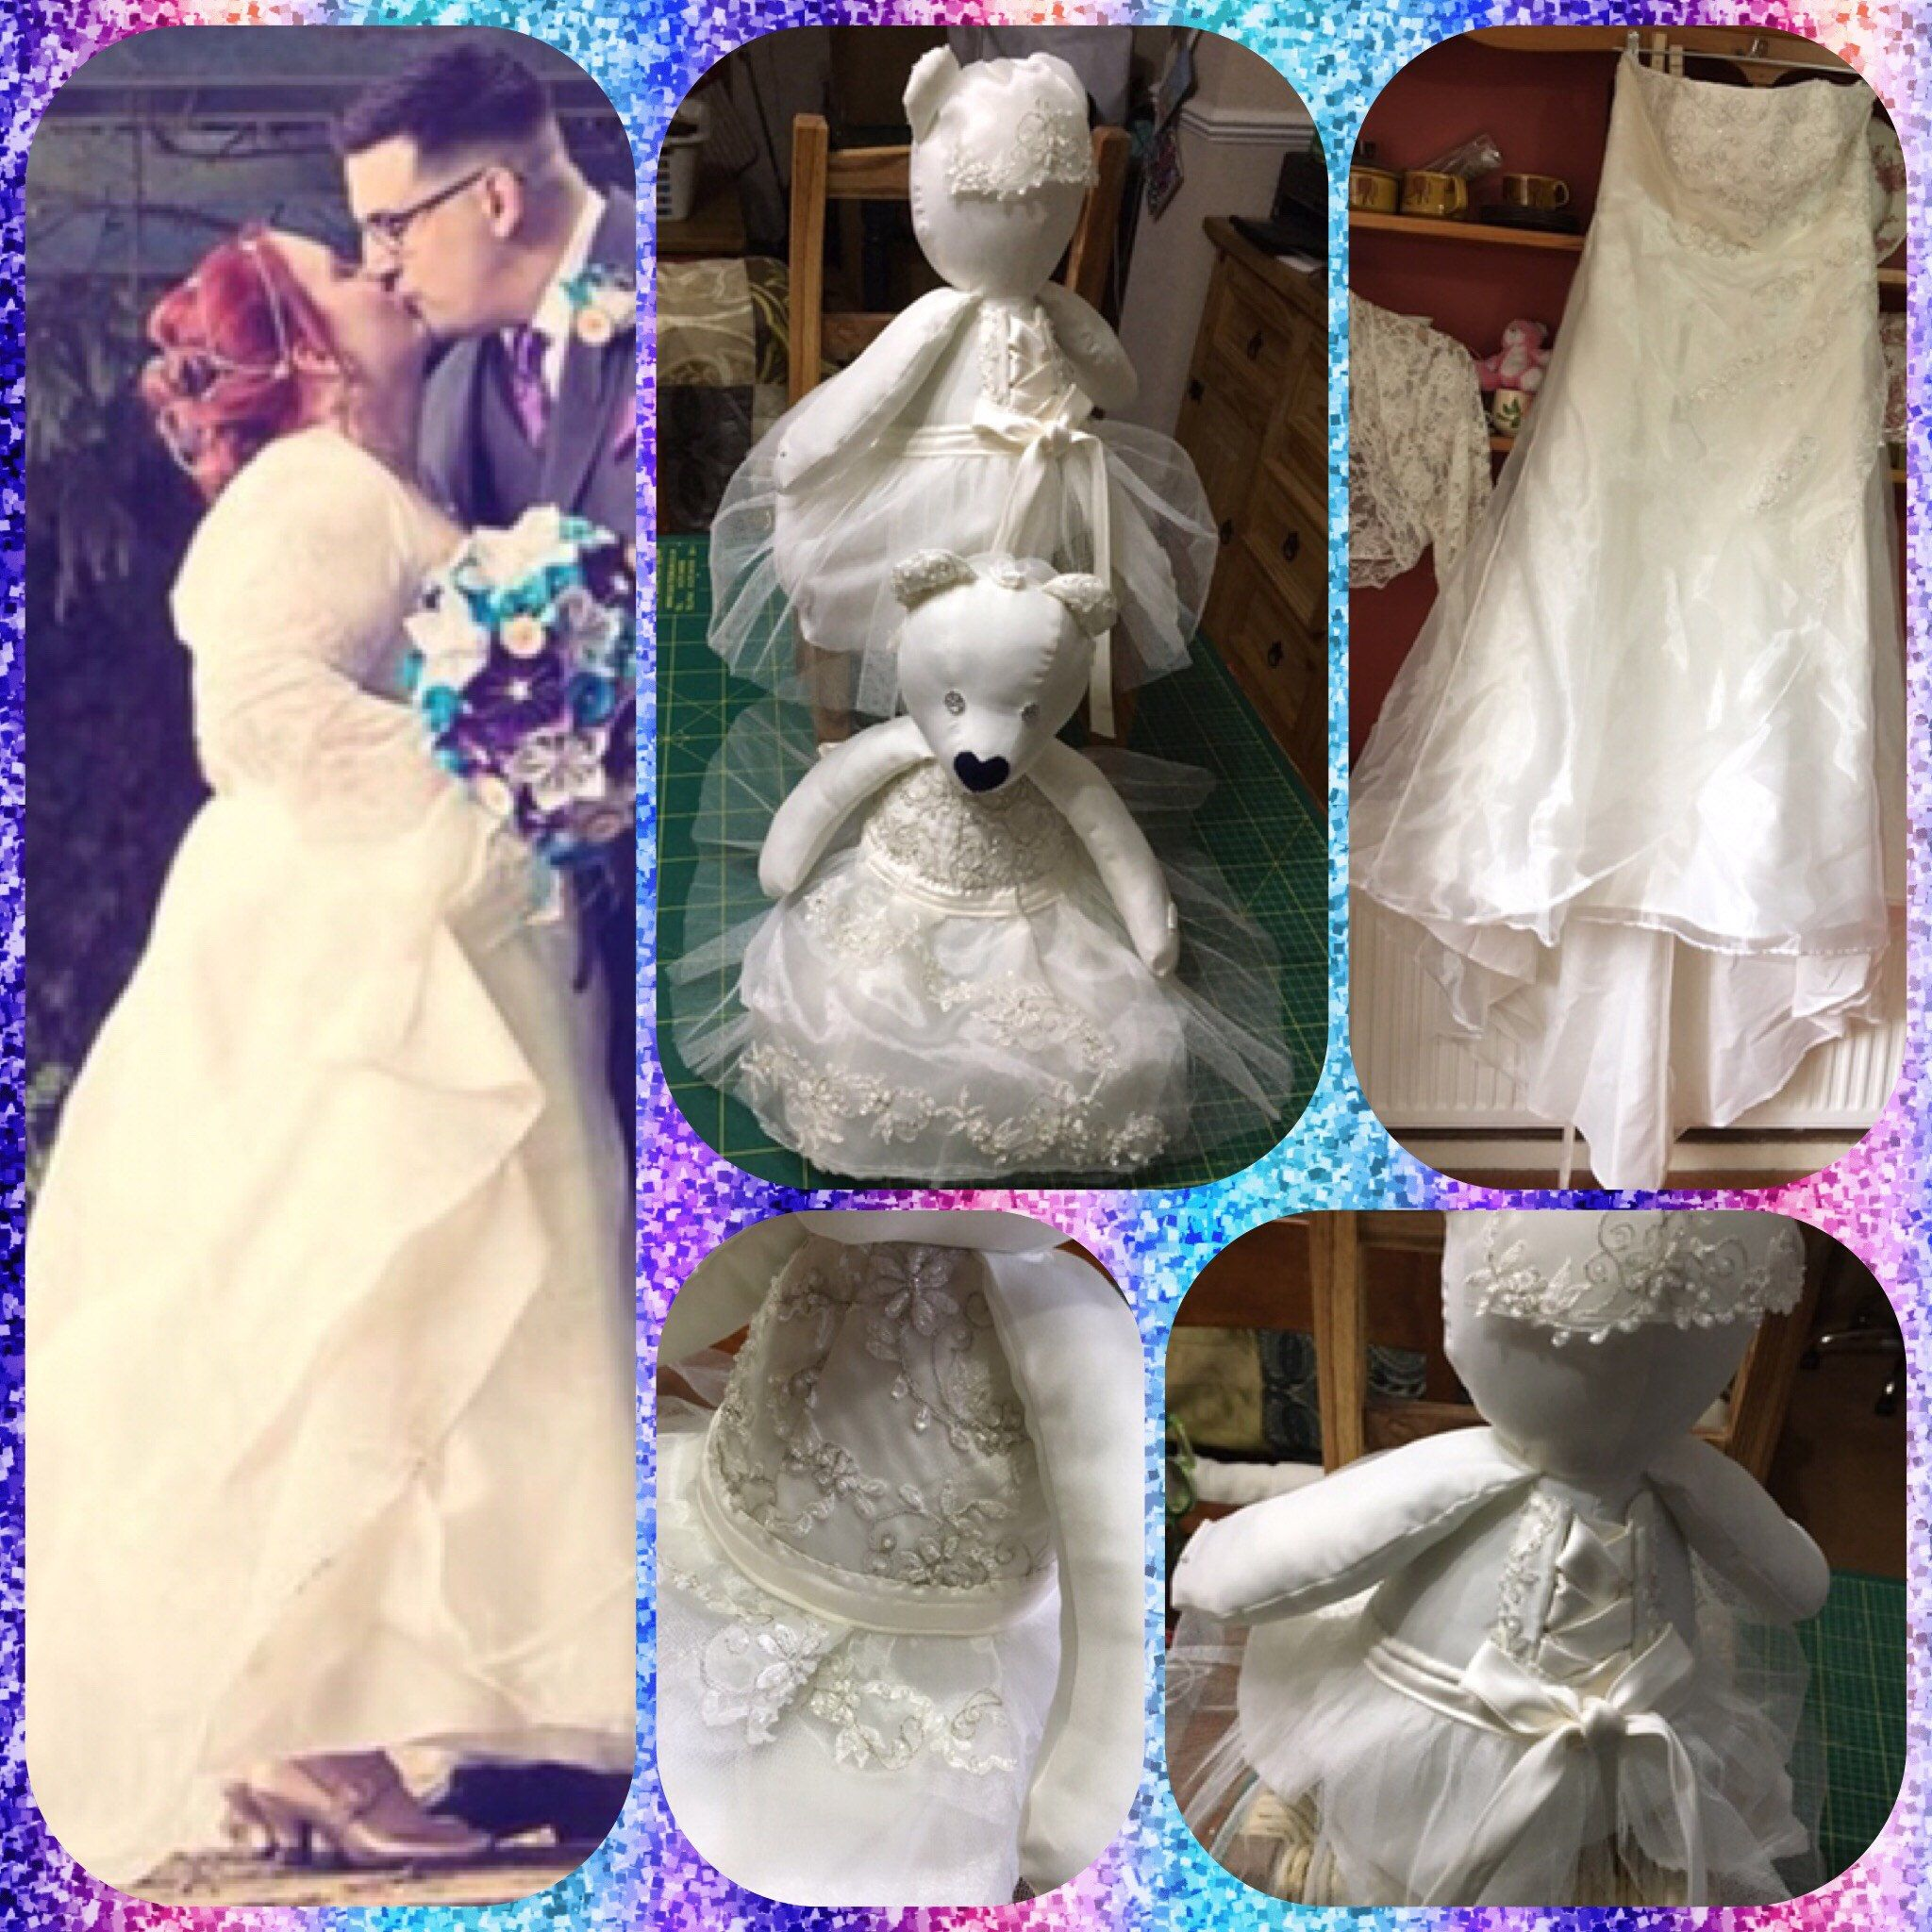 Wear your wedding dress on your anniversary  Beautiful BridalMemoryBears handcrafted from your precious wedding